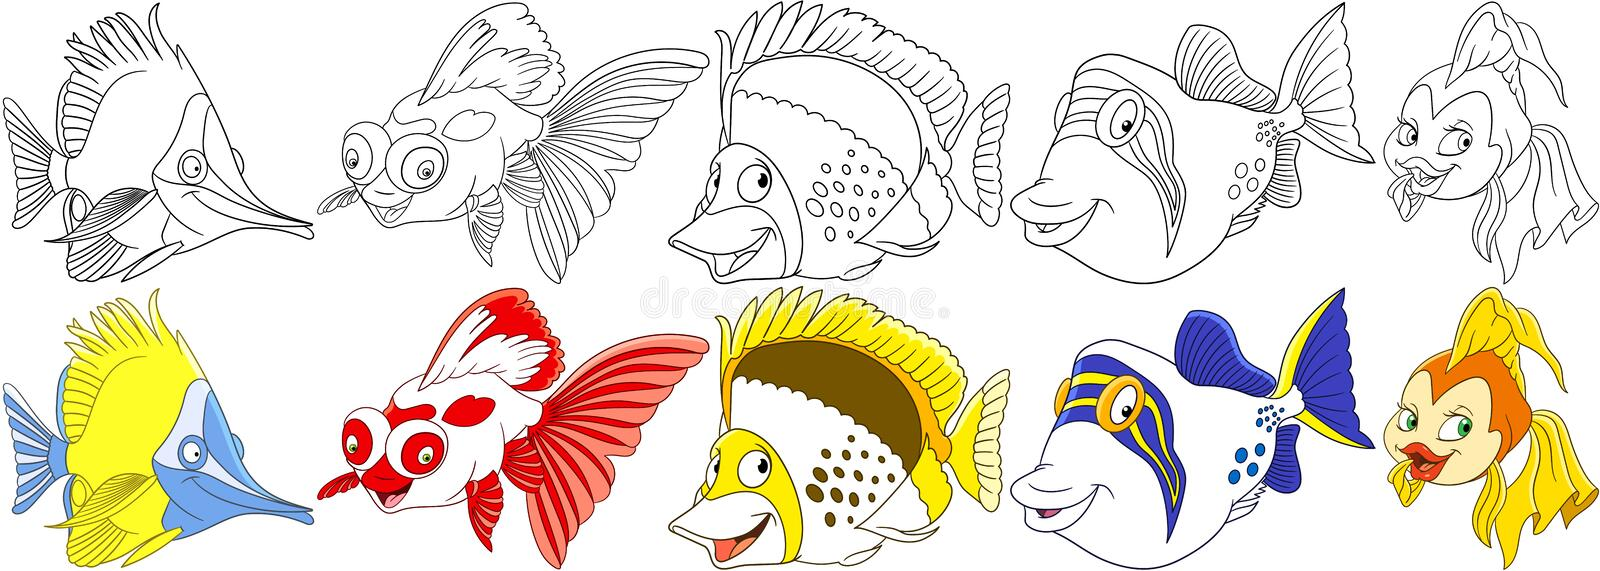 Cartoon fishes set royalty free stock photos